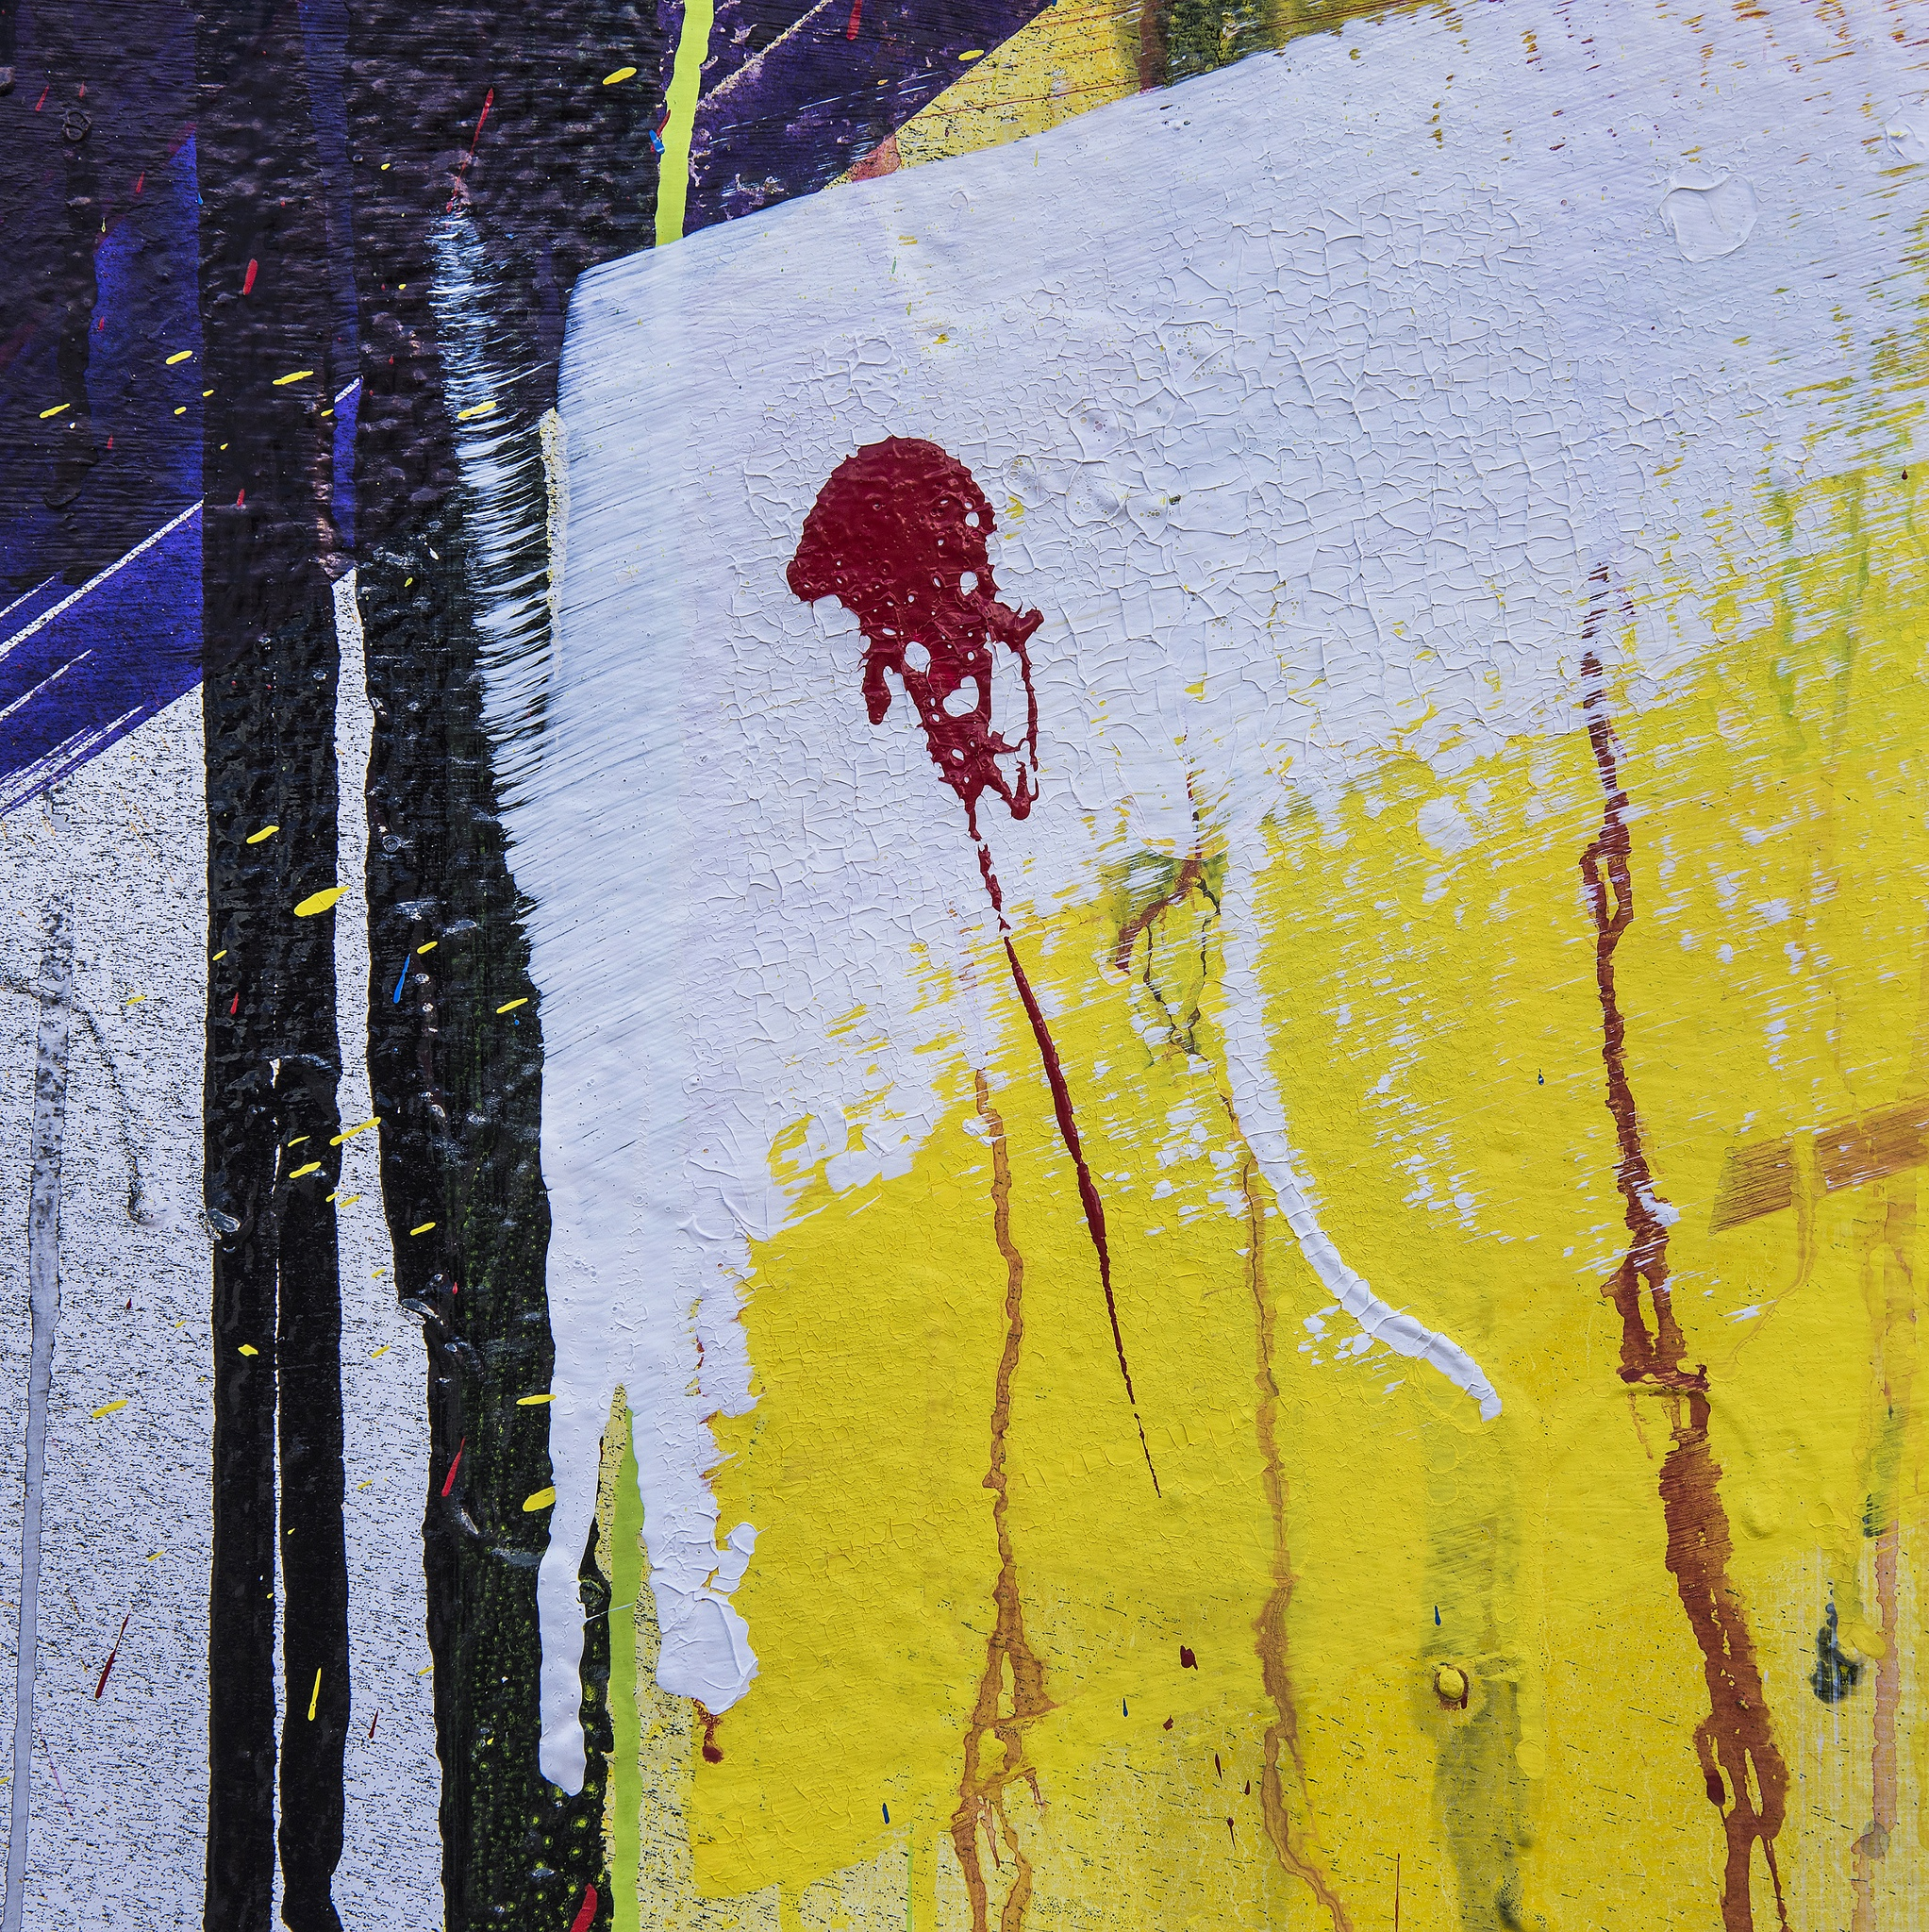 Abstract, Wynwood, Miami by Doctoral